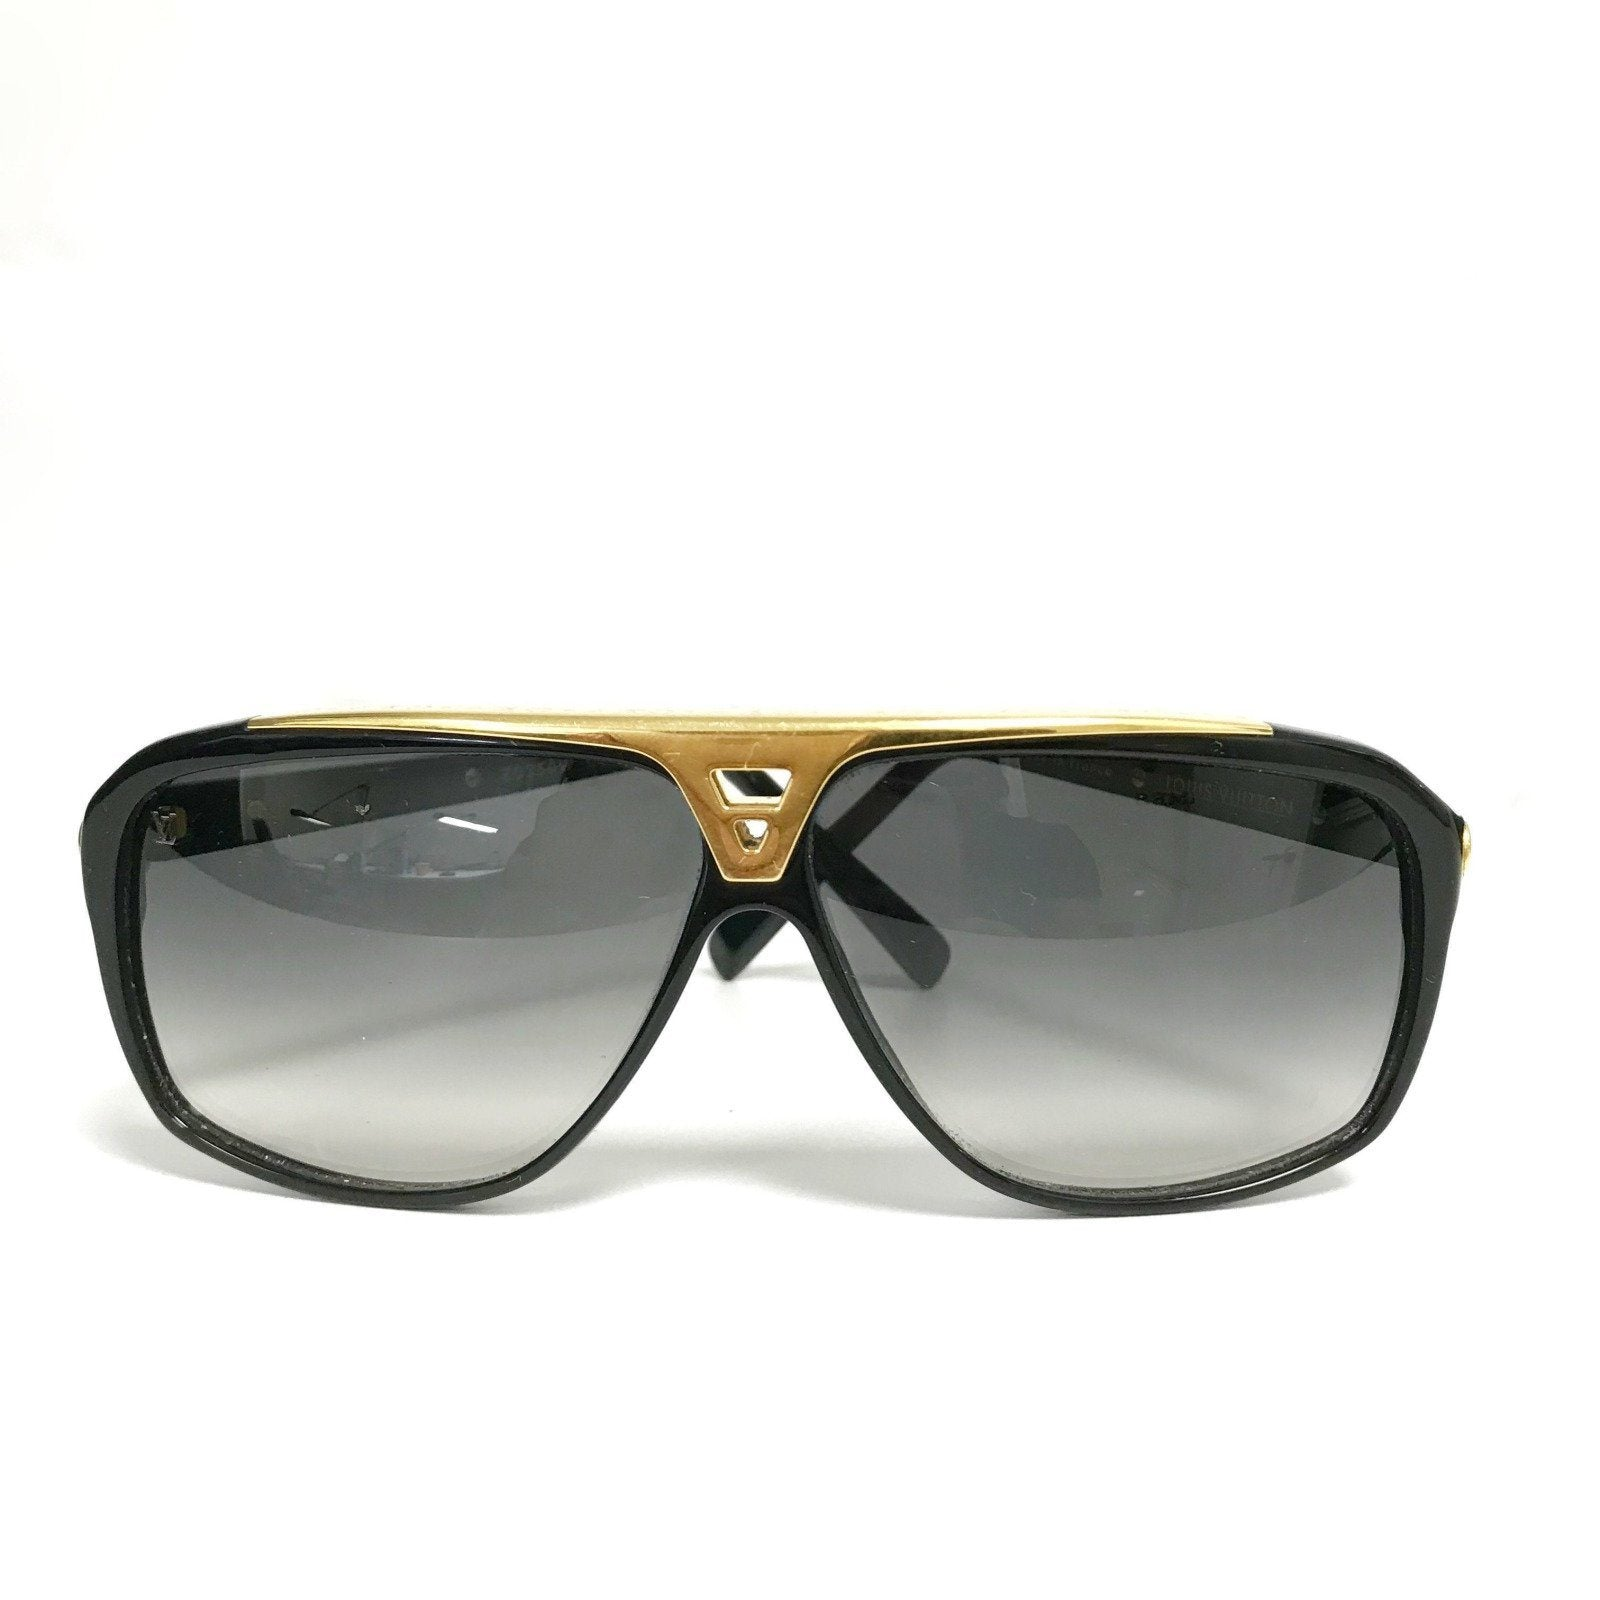 6e73c01800 Louis Vuitton Evidence Men s Sunglasses - Oliver Jewellery